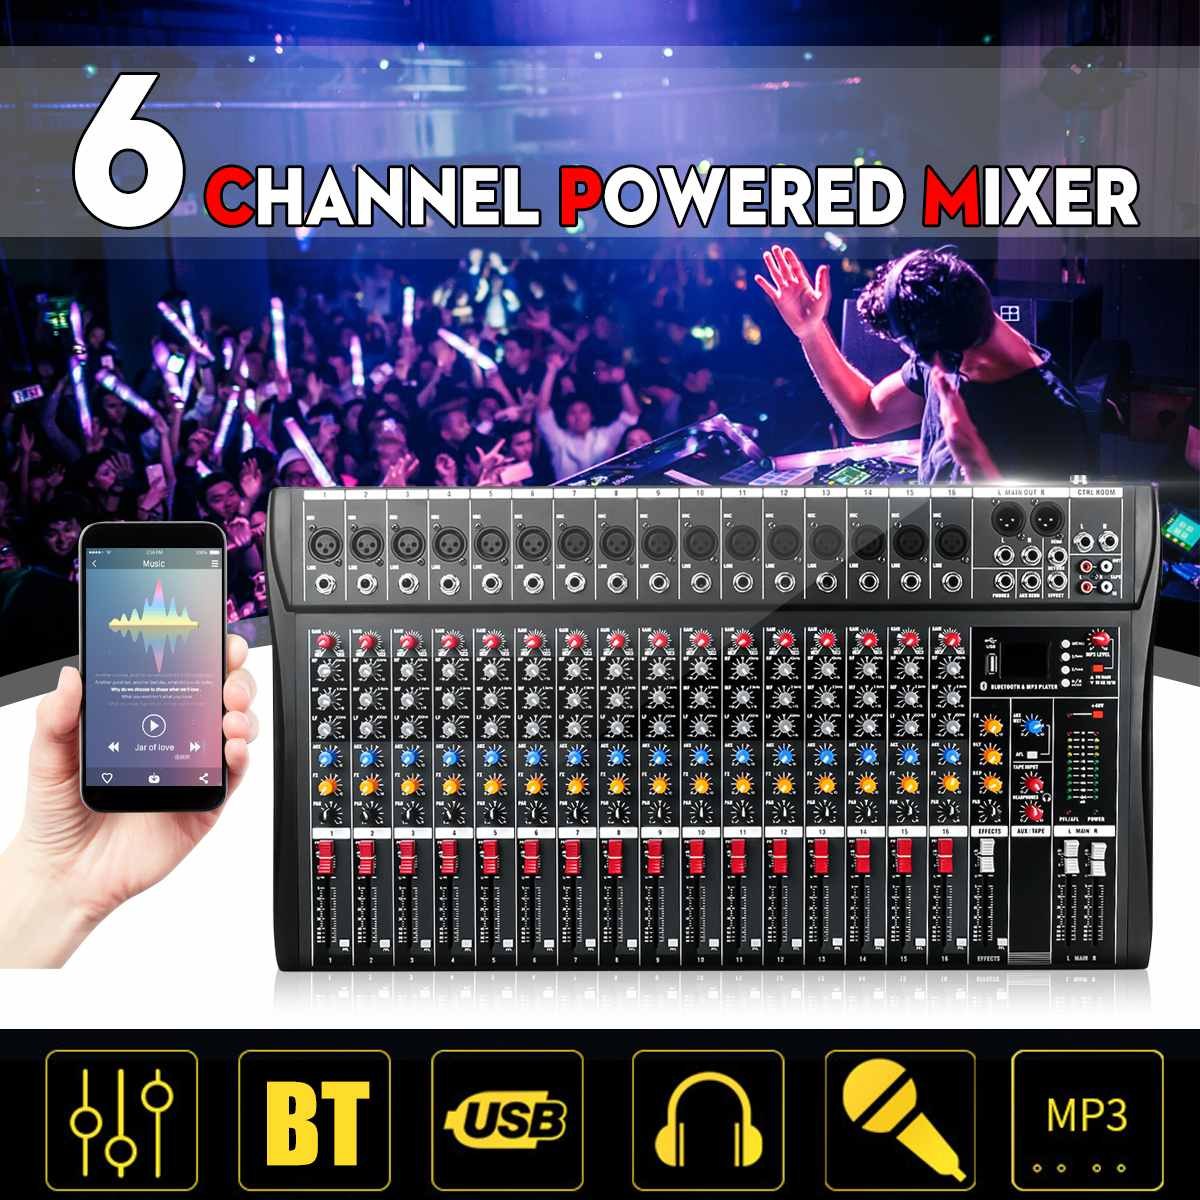 Professional 16 Channel bluetooth USB Audio Mixer DJ Sound Mixing Console Computer Karaoke Playback For Karaoke KTV Match PartyProfessional 16 Channel bluetooth USB Audio Mixer DJ Sound Mixing Console Computer Karaoke Playback For Karaoke KTV Match Party